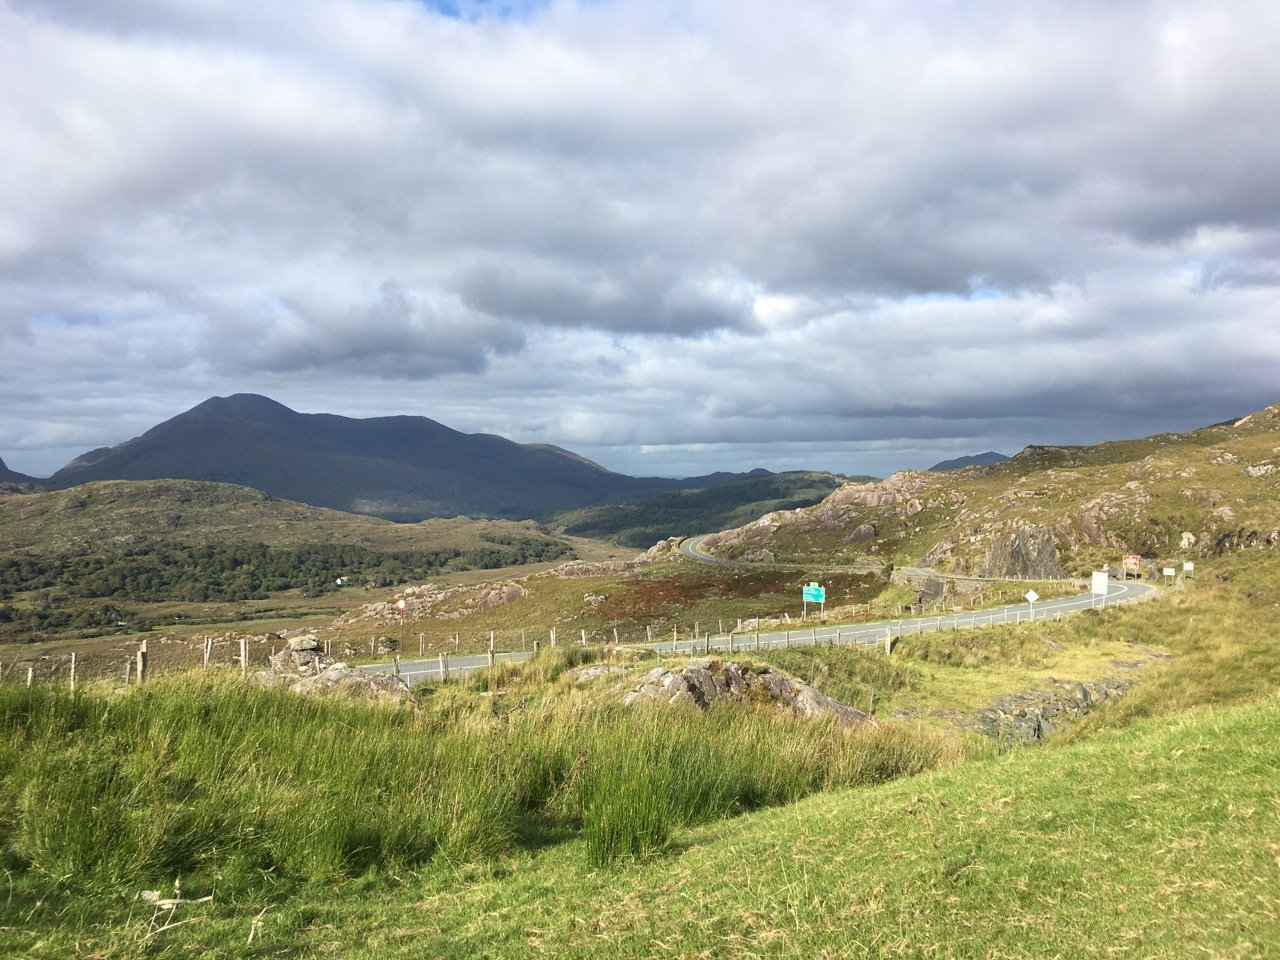 View from Moll's Gap